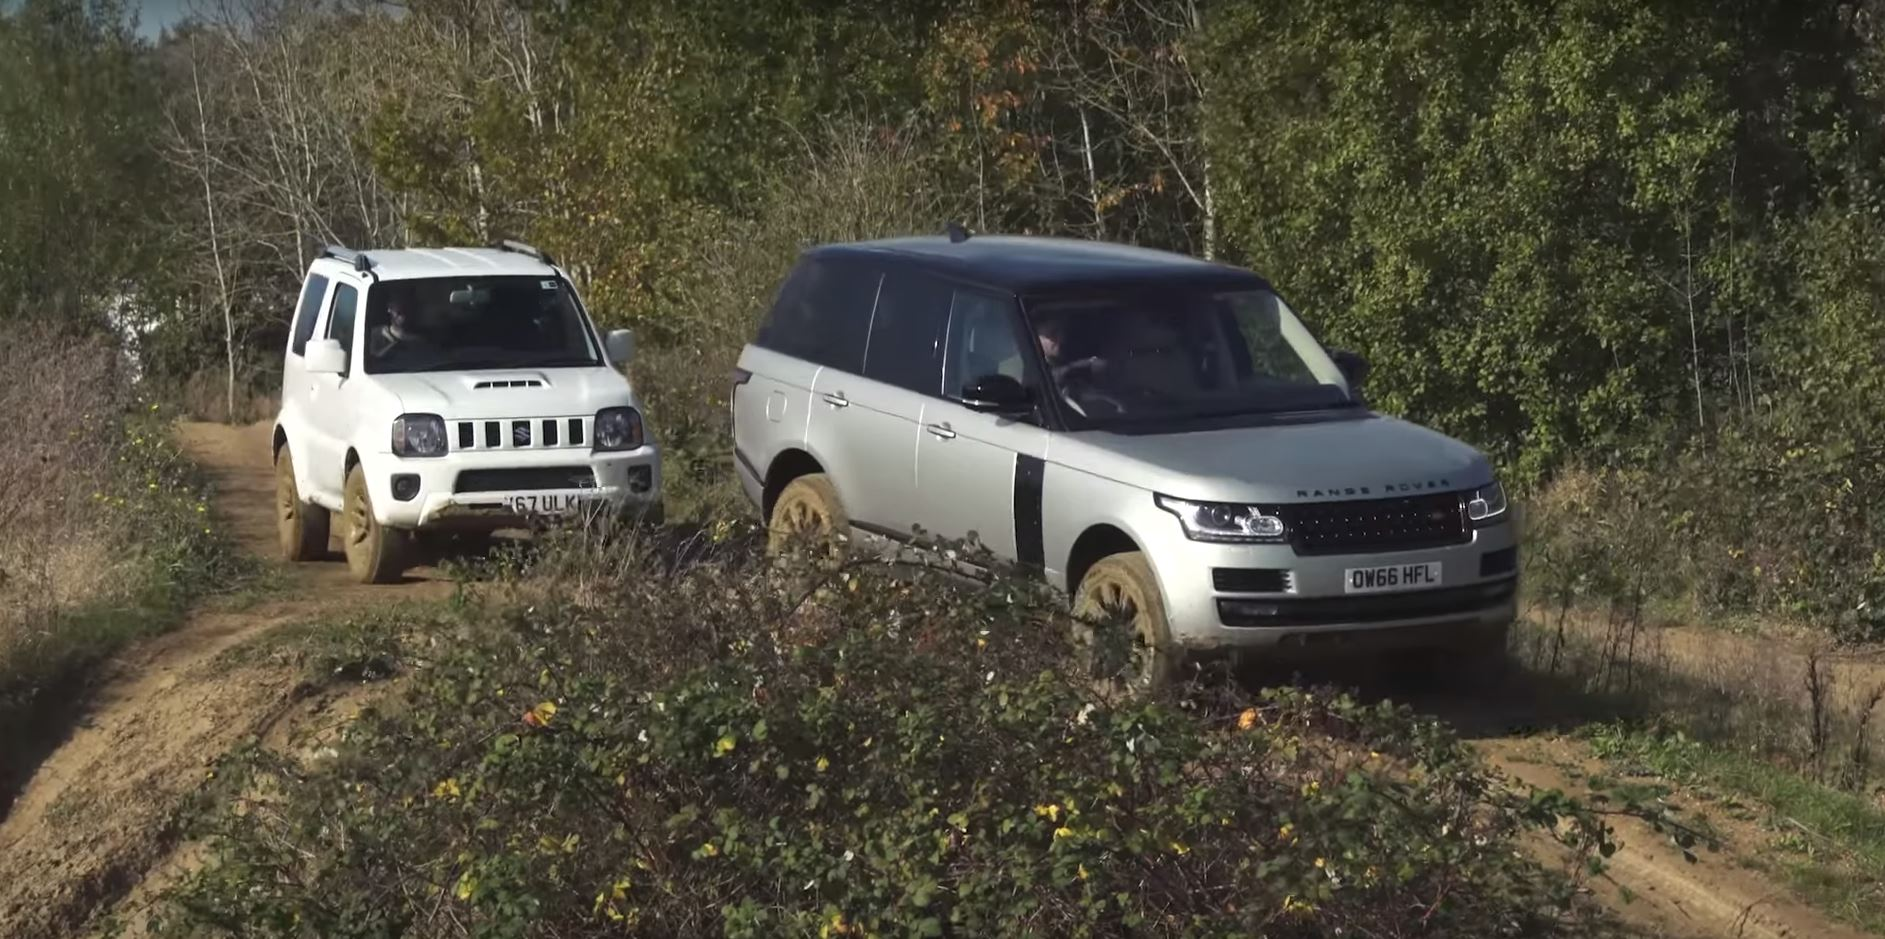 Watch a Jimny outperform a Range Rover off-road.